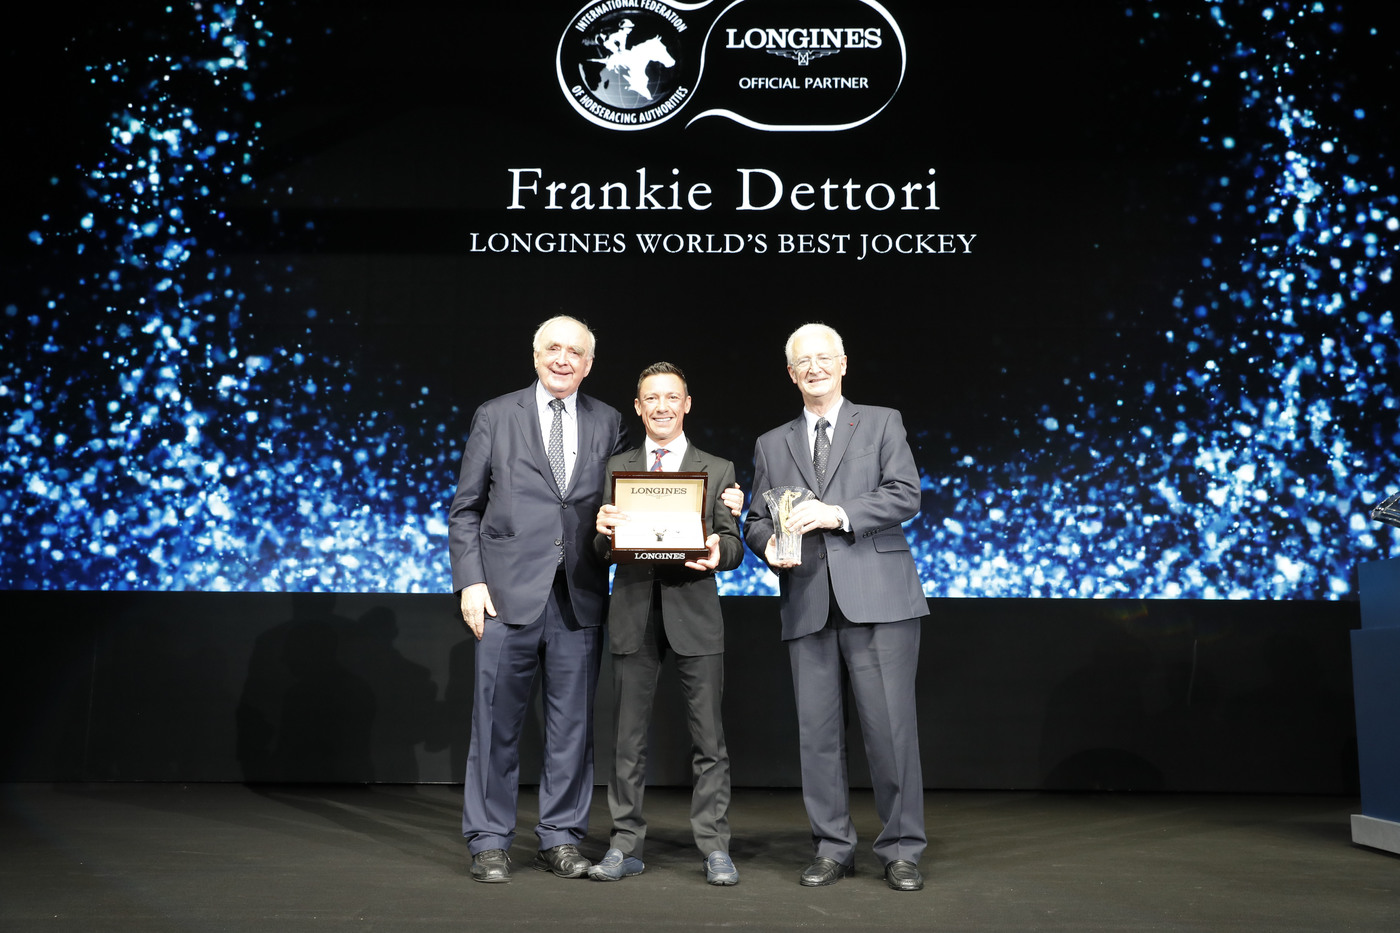 Longines Flat Racing Event: Frankie Dettori Crowned the 2018 Longines World's Best Jockey  3